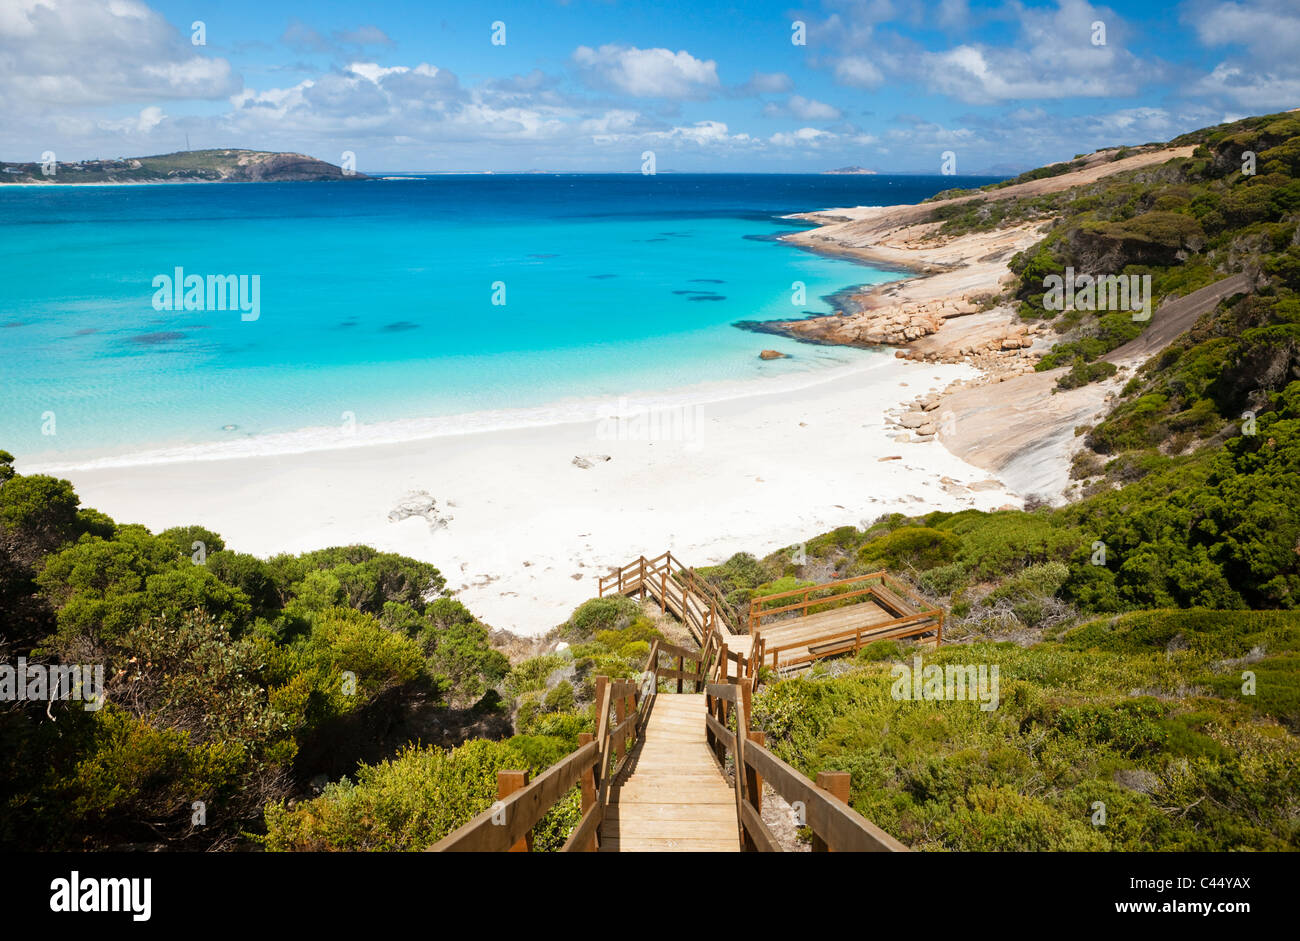 Boardwalk leading down to Blue Haven Beach. Esperance, Western Australia, Australia - Stock Image